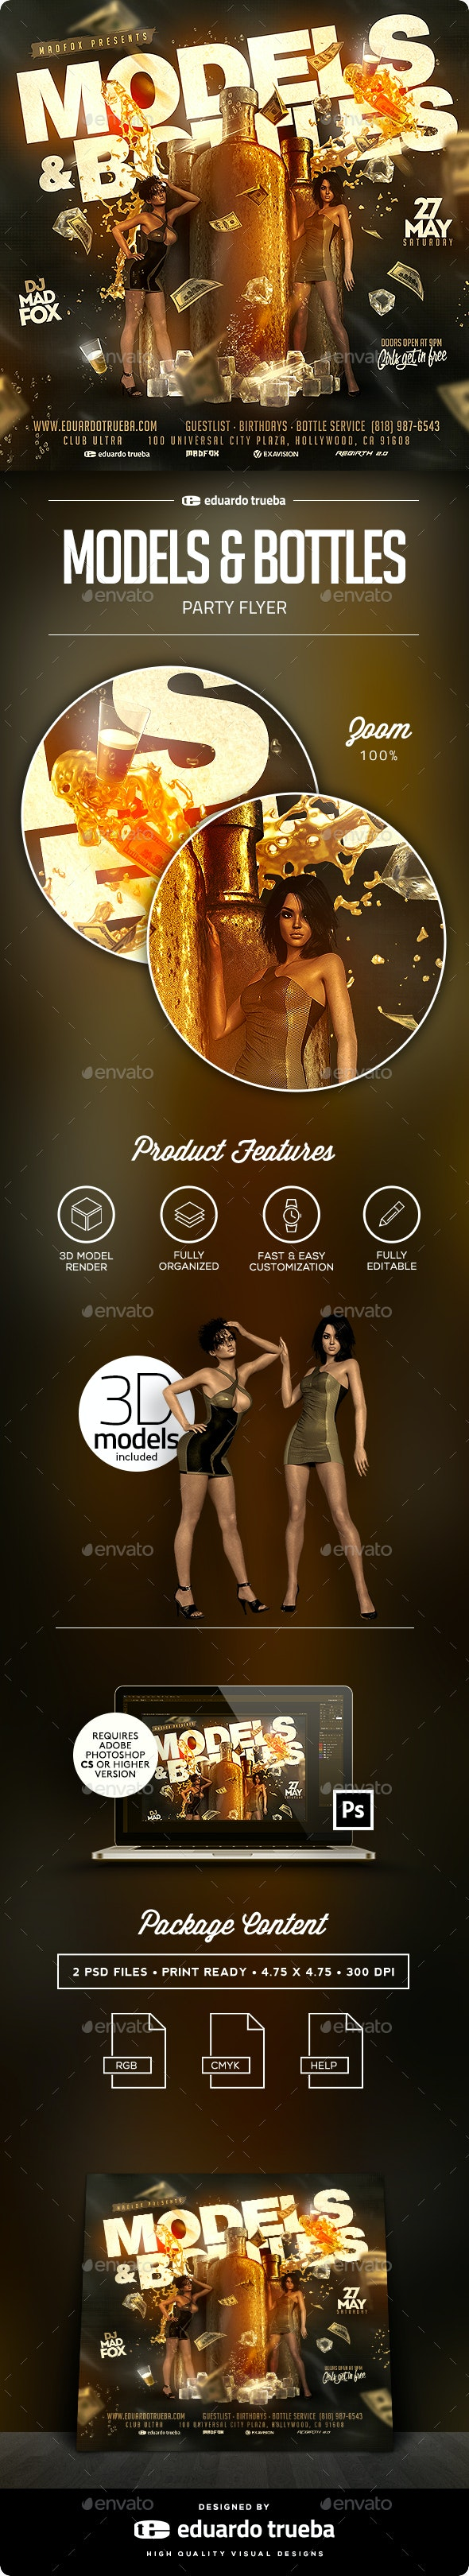 Models & Bottles Party Flyer - Clubs & Parties Events